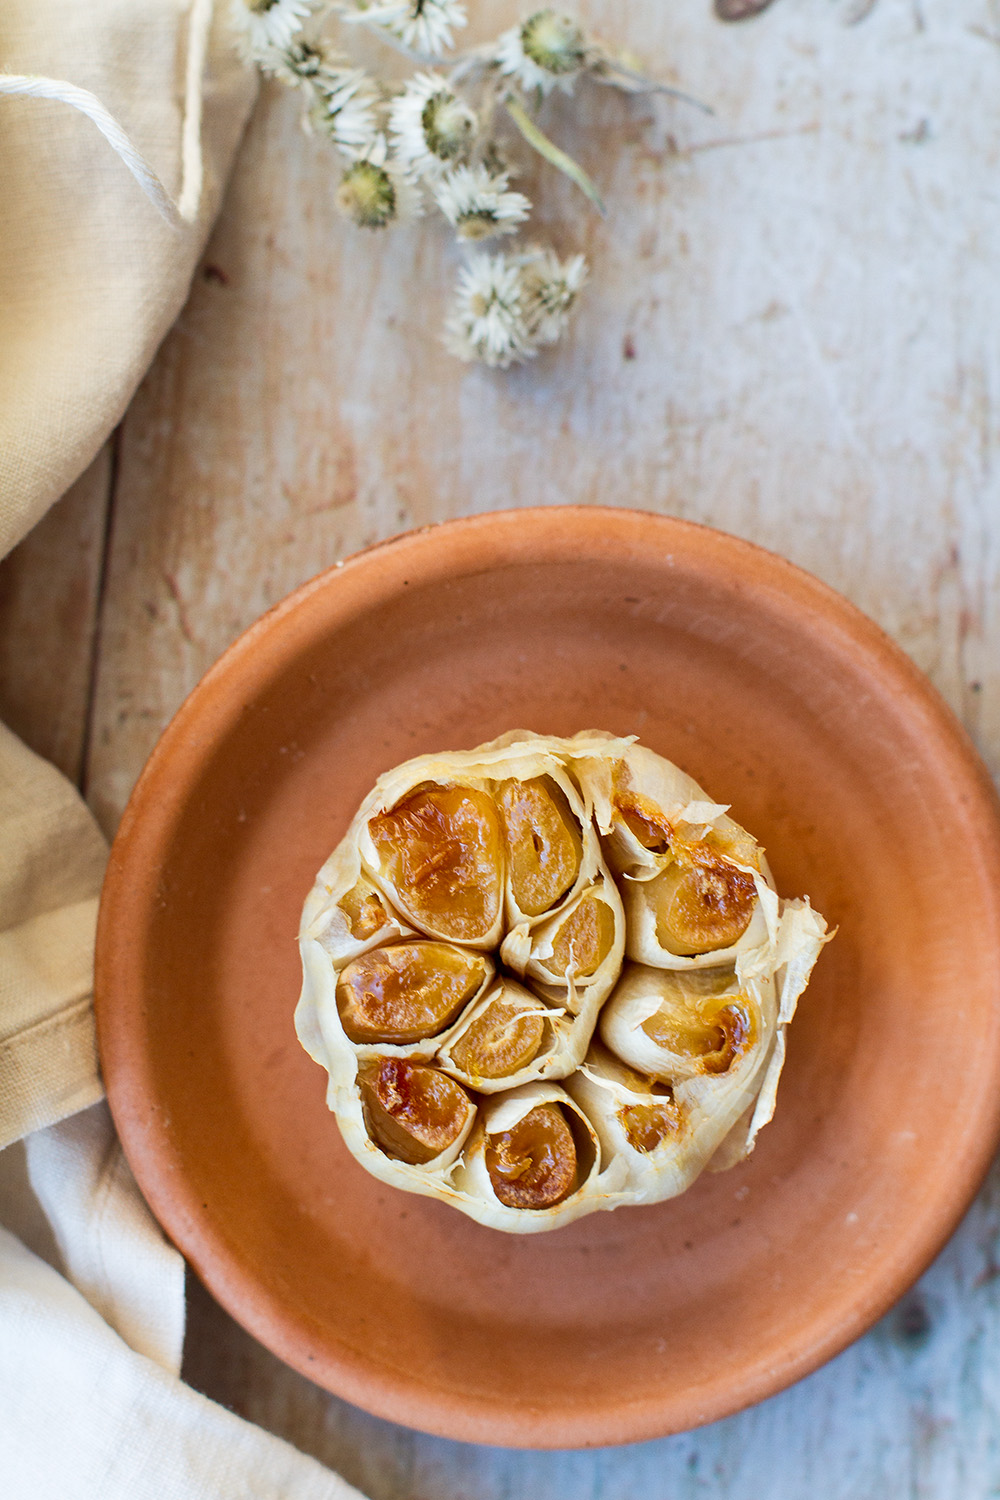 Roasted garlic on a small terracotta plate.